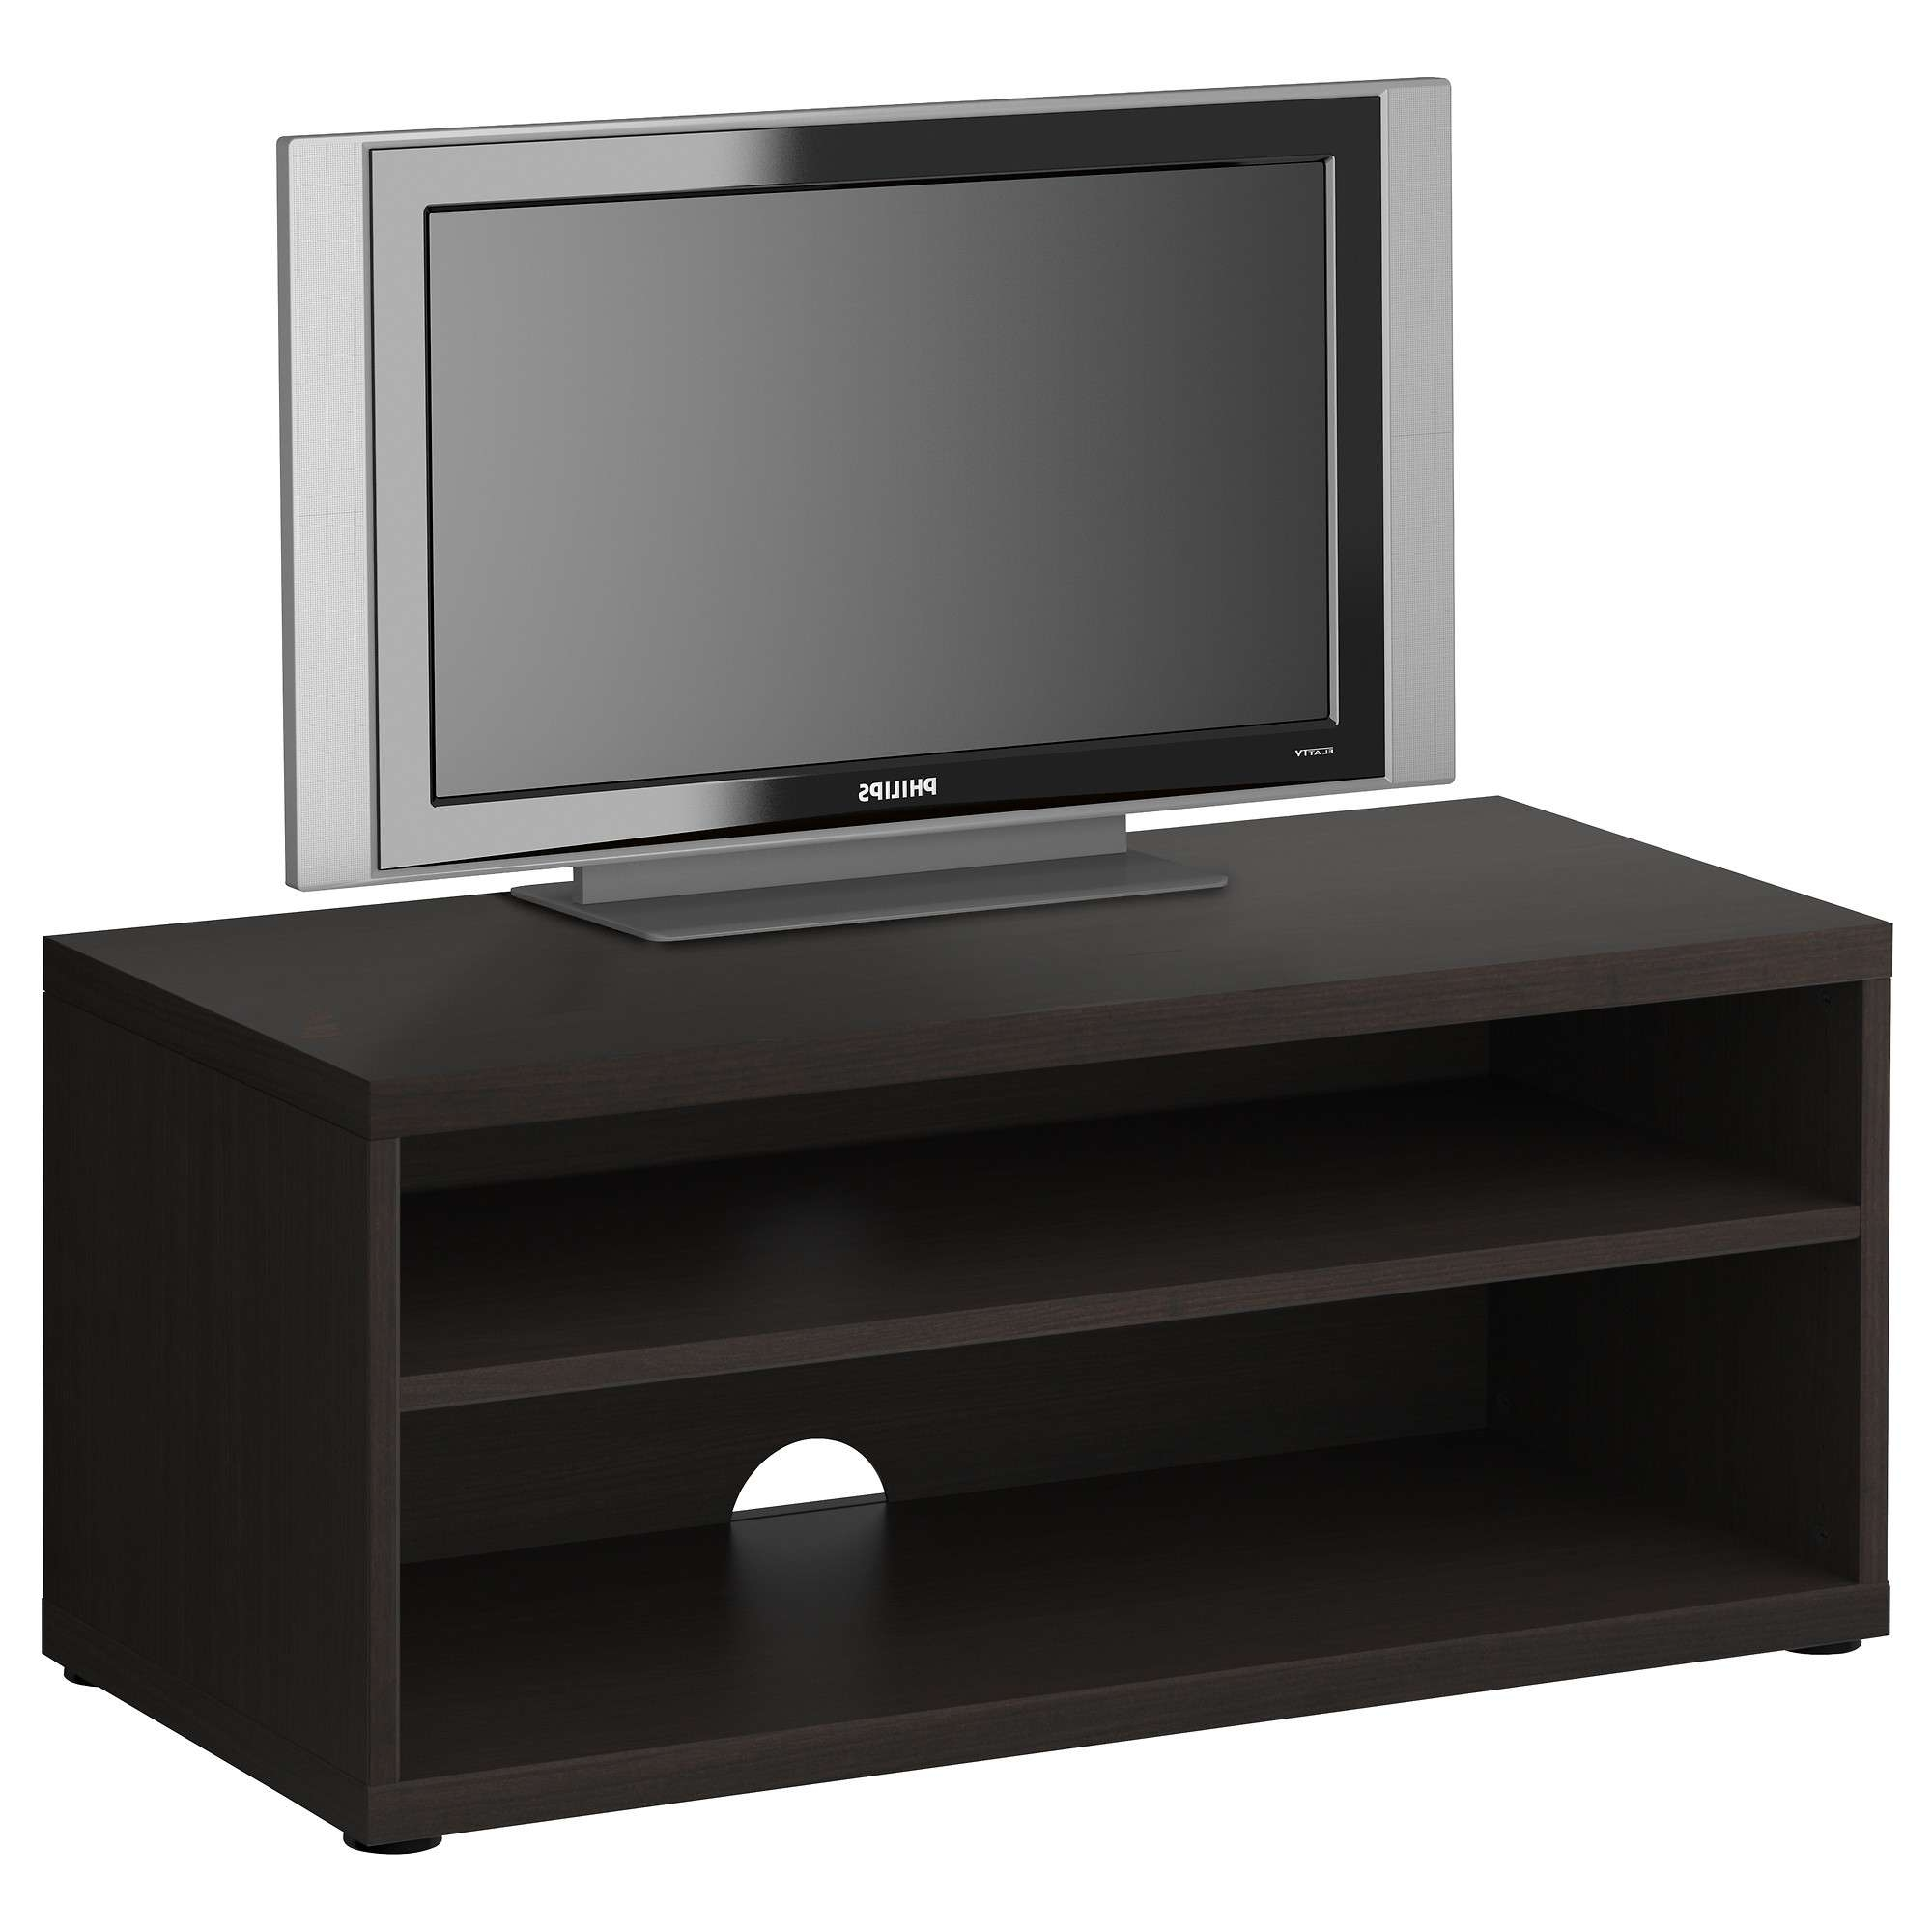 Large Tv Stands & Entertainment Centers – Ikea Inside Black Tv Stands With Drawers (View 7 of 15)